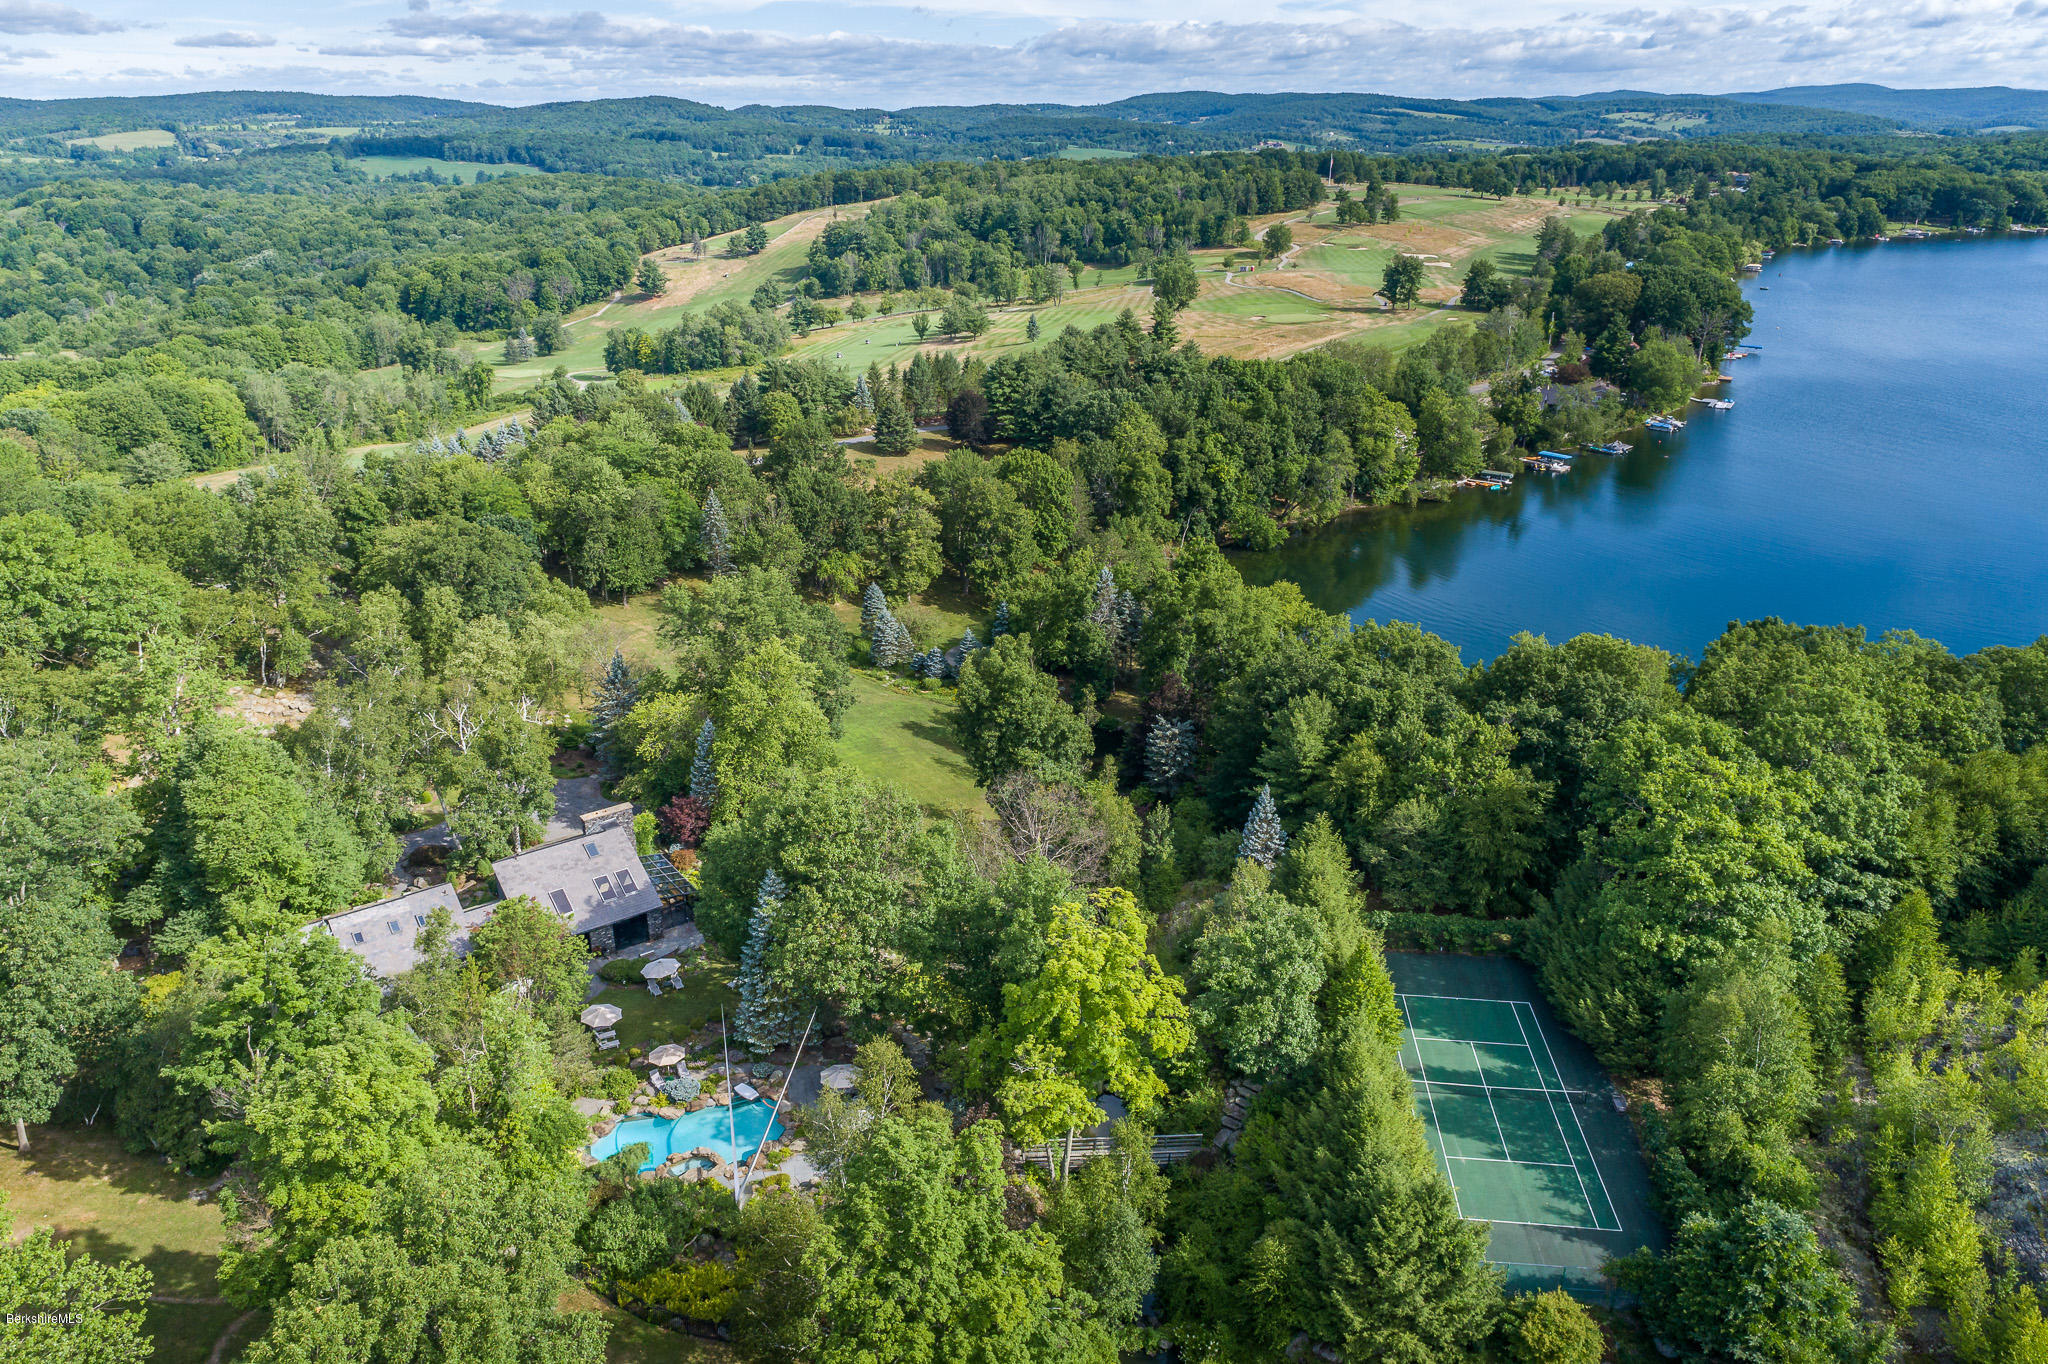 181 Golf Course, Craryville, New York 12521, 7 Bedrooms Bedrooms, 11 Rooms Rooms,6 BathroomsBathrooms,Residential,For Sale,Golf Course,231864